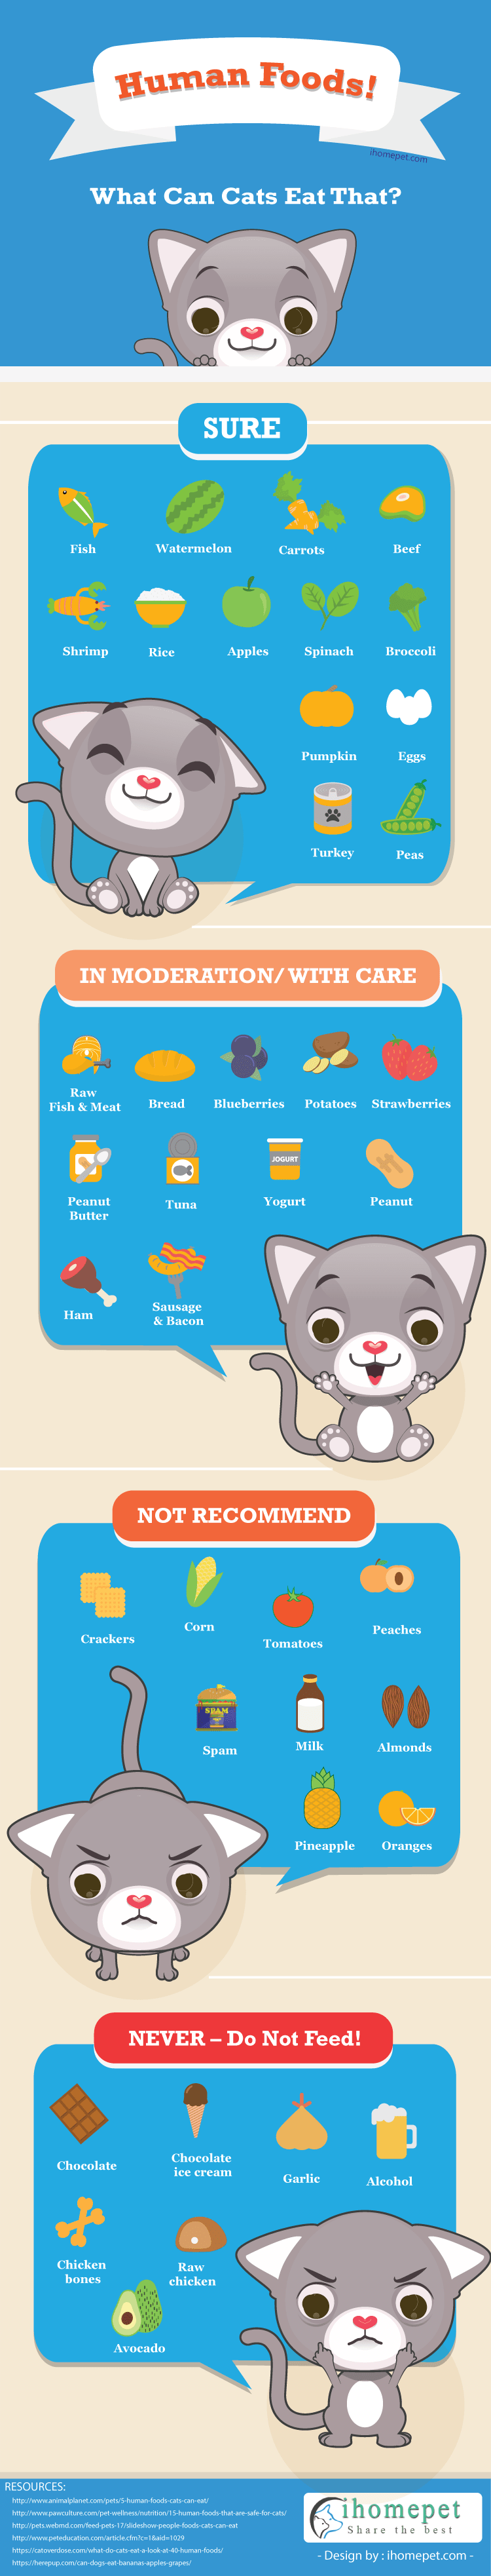 What Can Cats Eat Besides Cat Food